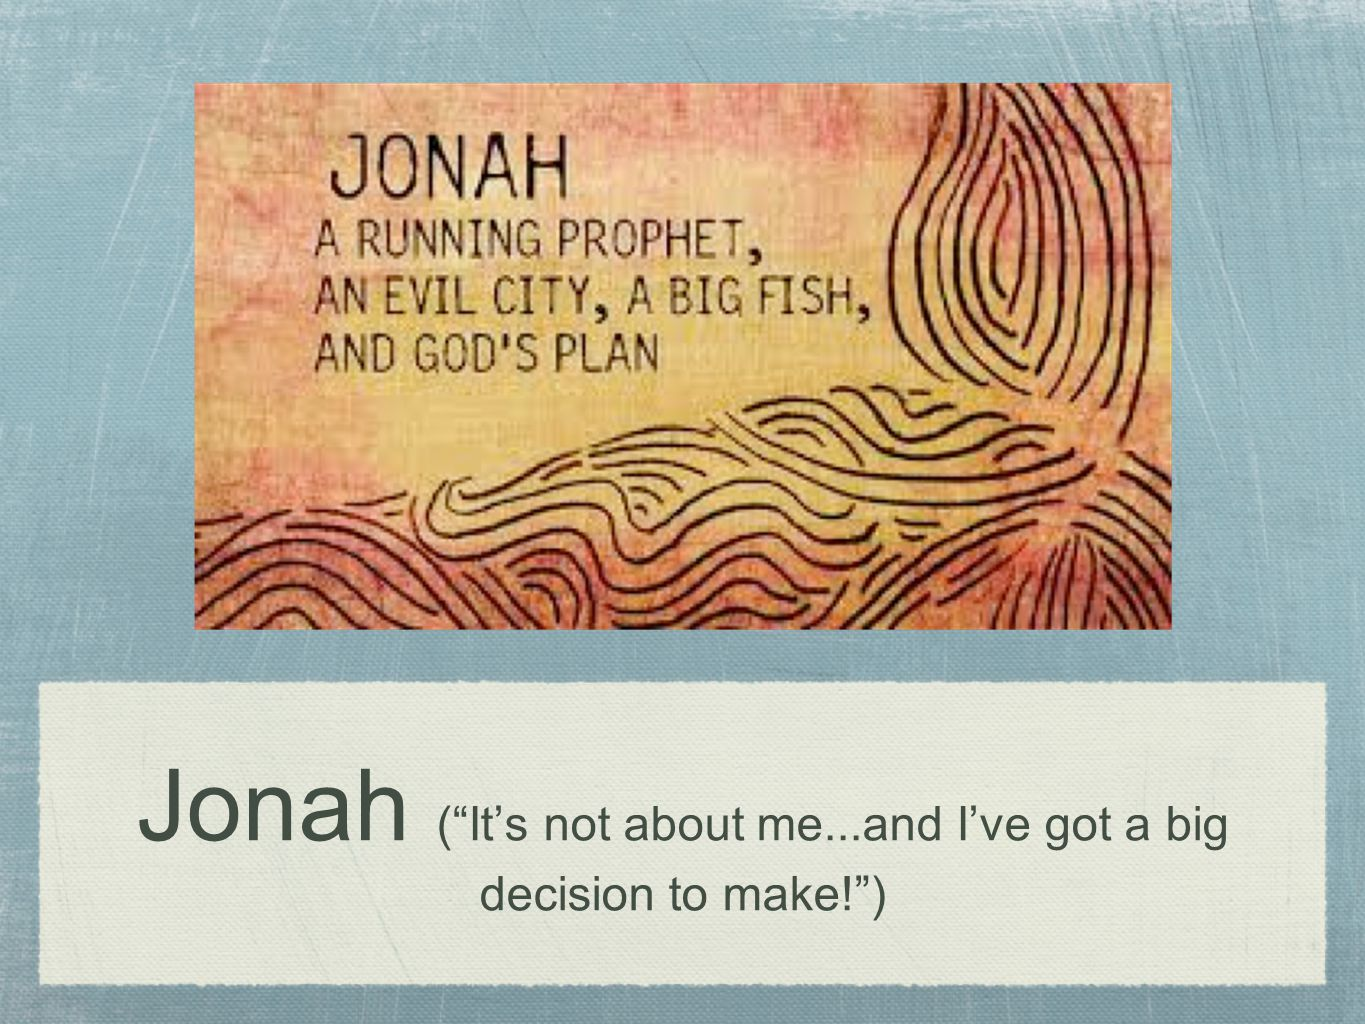 Jonah ( It's not about me...and I've got a big decision to make! )